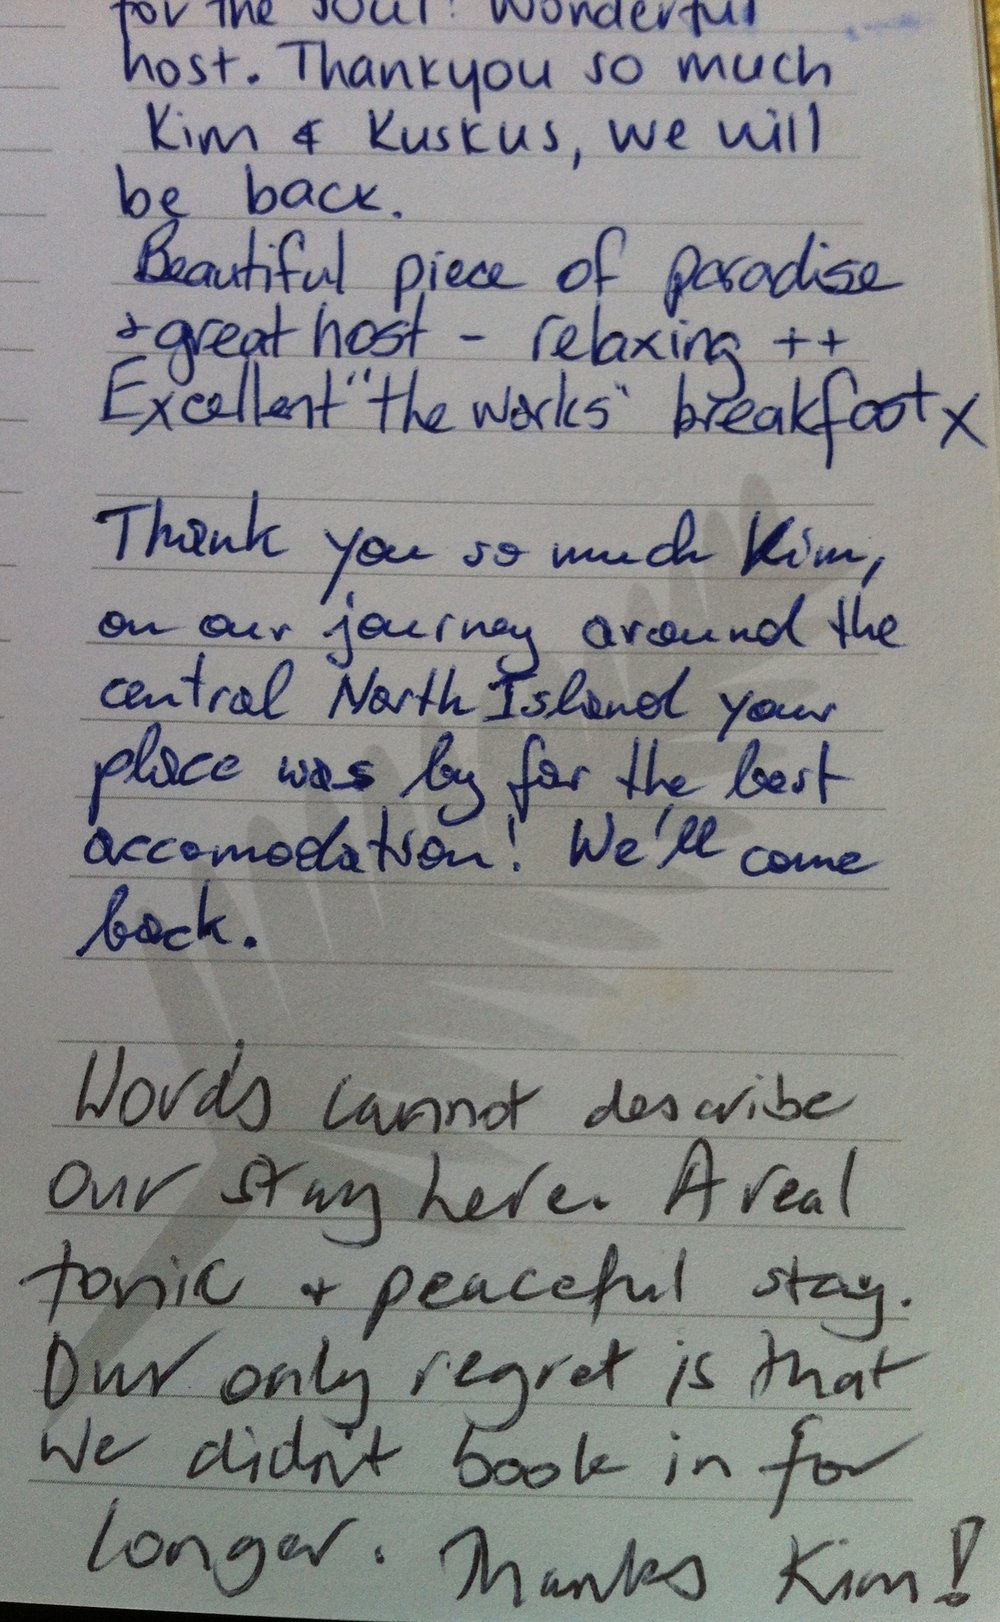 From the in-house Guestbook